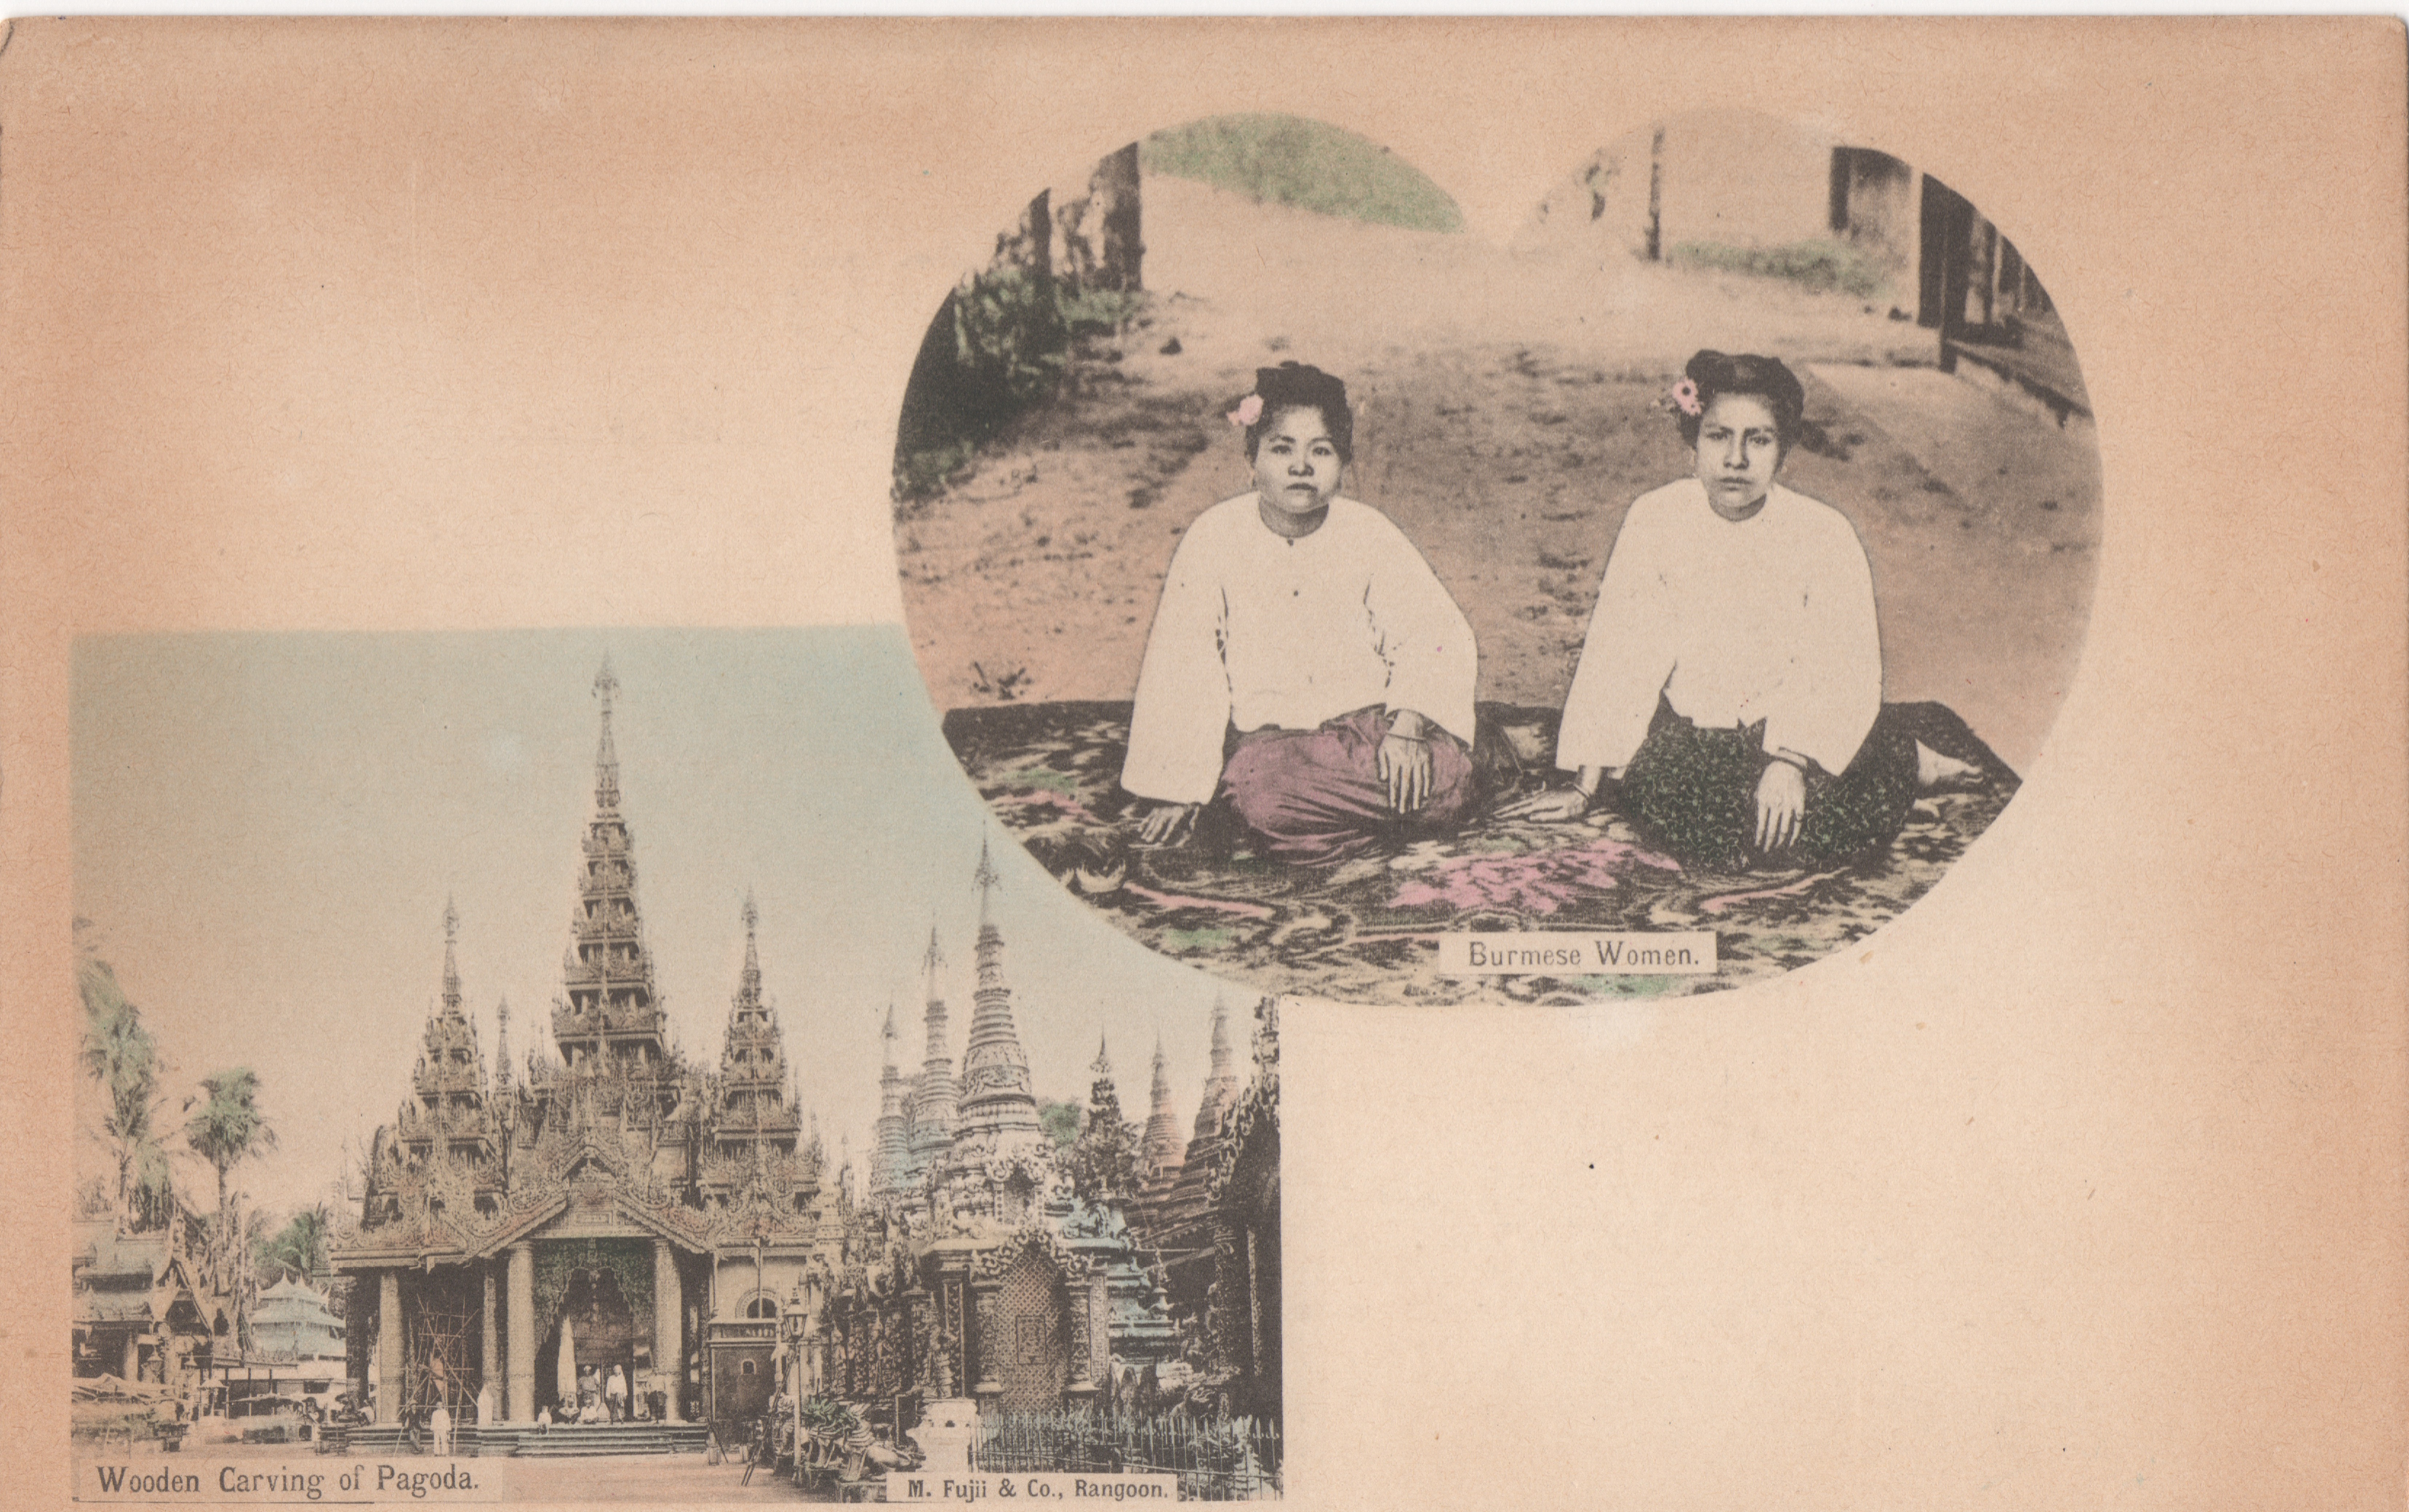 The heart shaped cartouche is unusual for these multi view types of postcards.